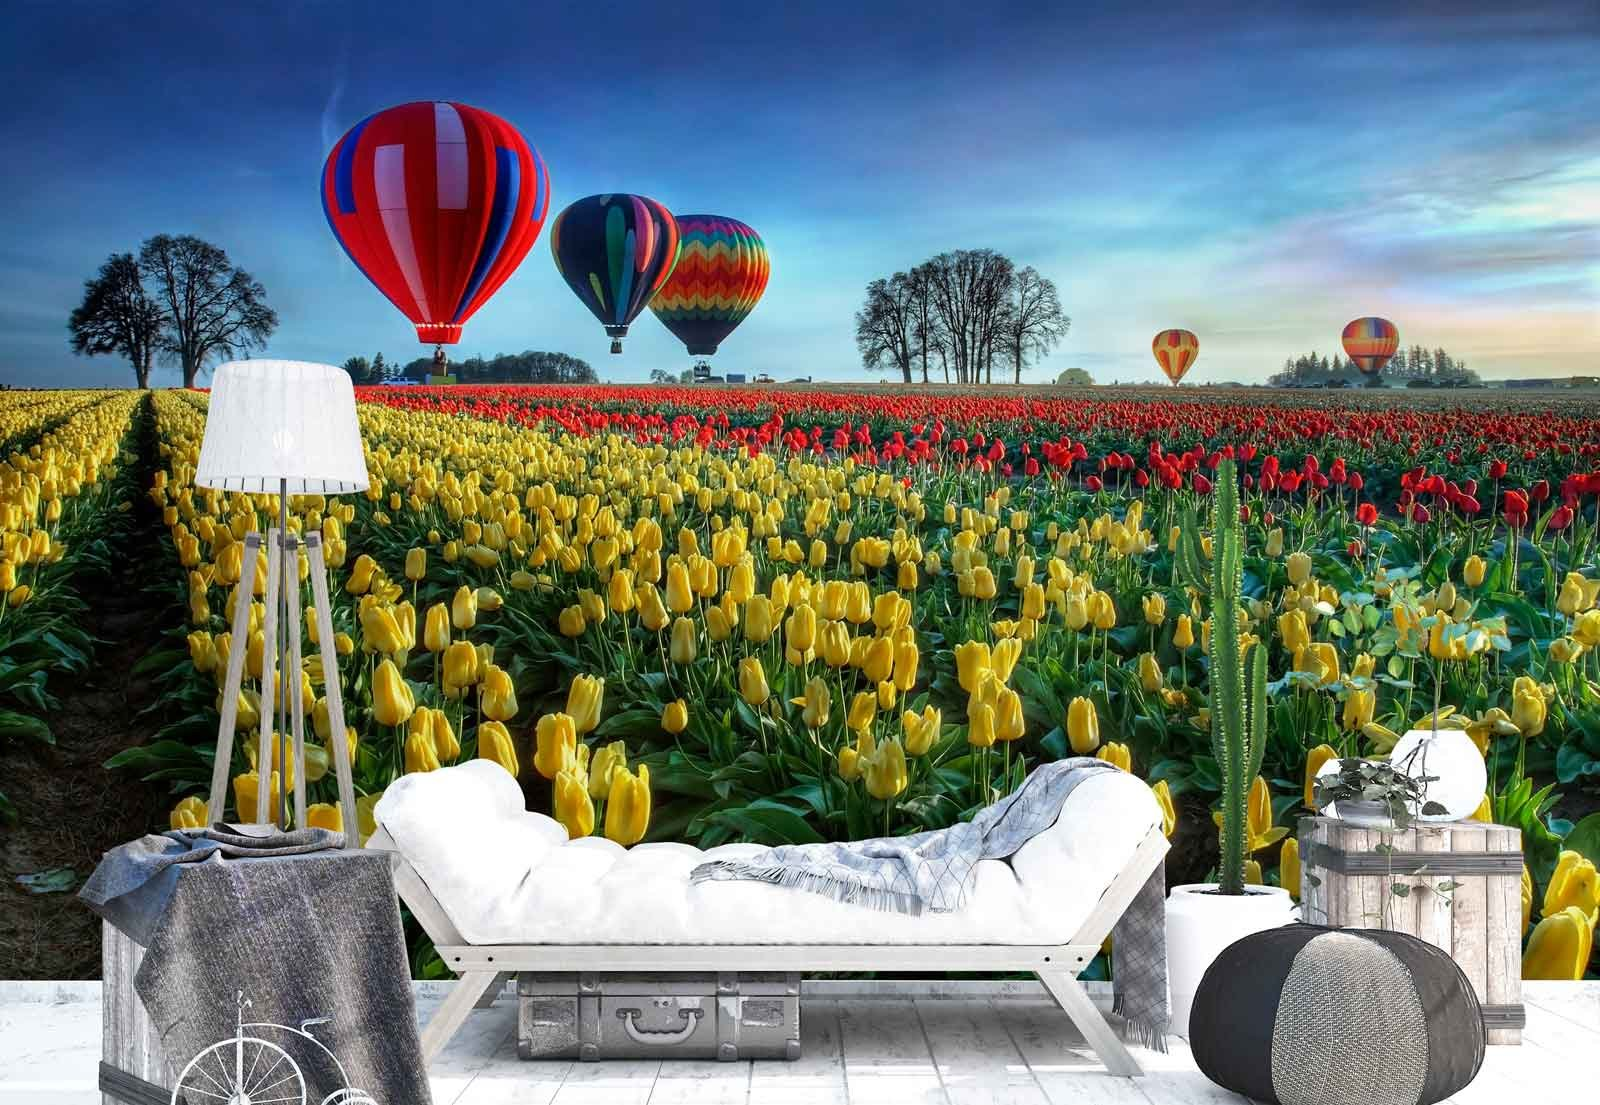 Photo wallpaper wall mural - Tulips Plantage Hot Air Balloons - Theme Sport & Hobbies - XL - 12ft x 8ft 4in (WxH) - 4 Pieces - Printed on 130gsm Non-Woven Paper - 1X-52201V8